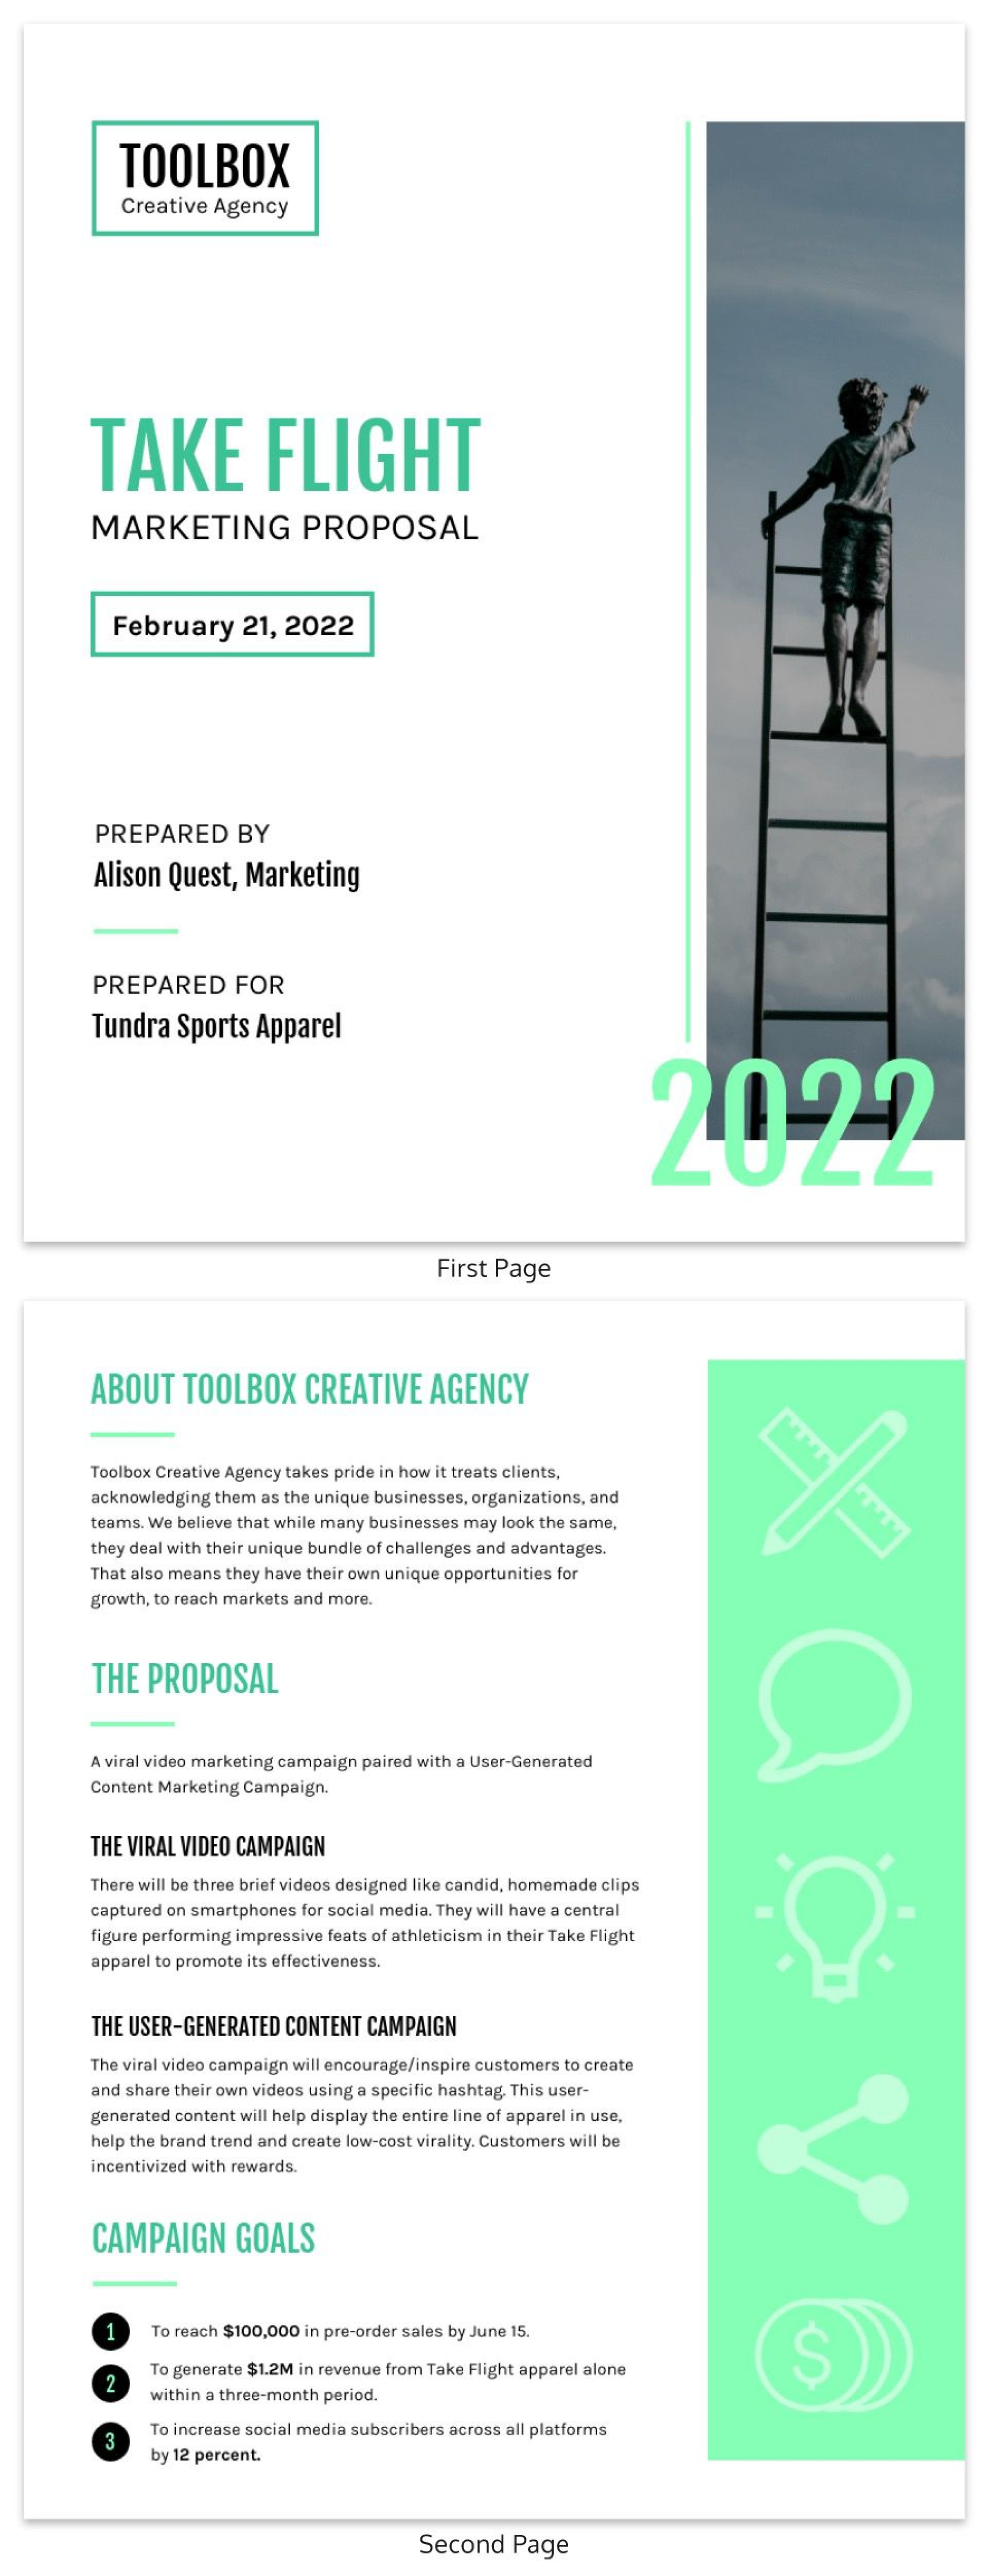 009 Amazing Busines Proposal Sample Pdf Free Download Image  Project1920